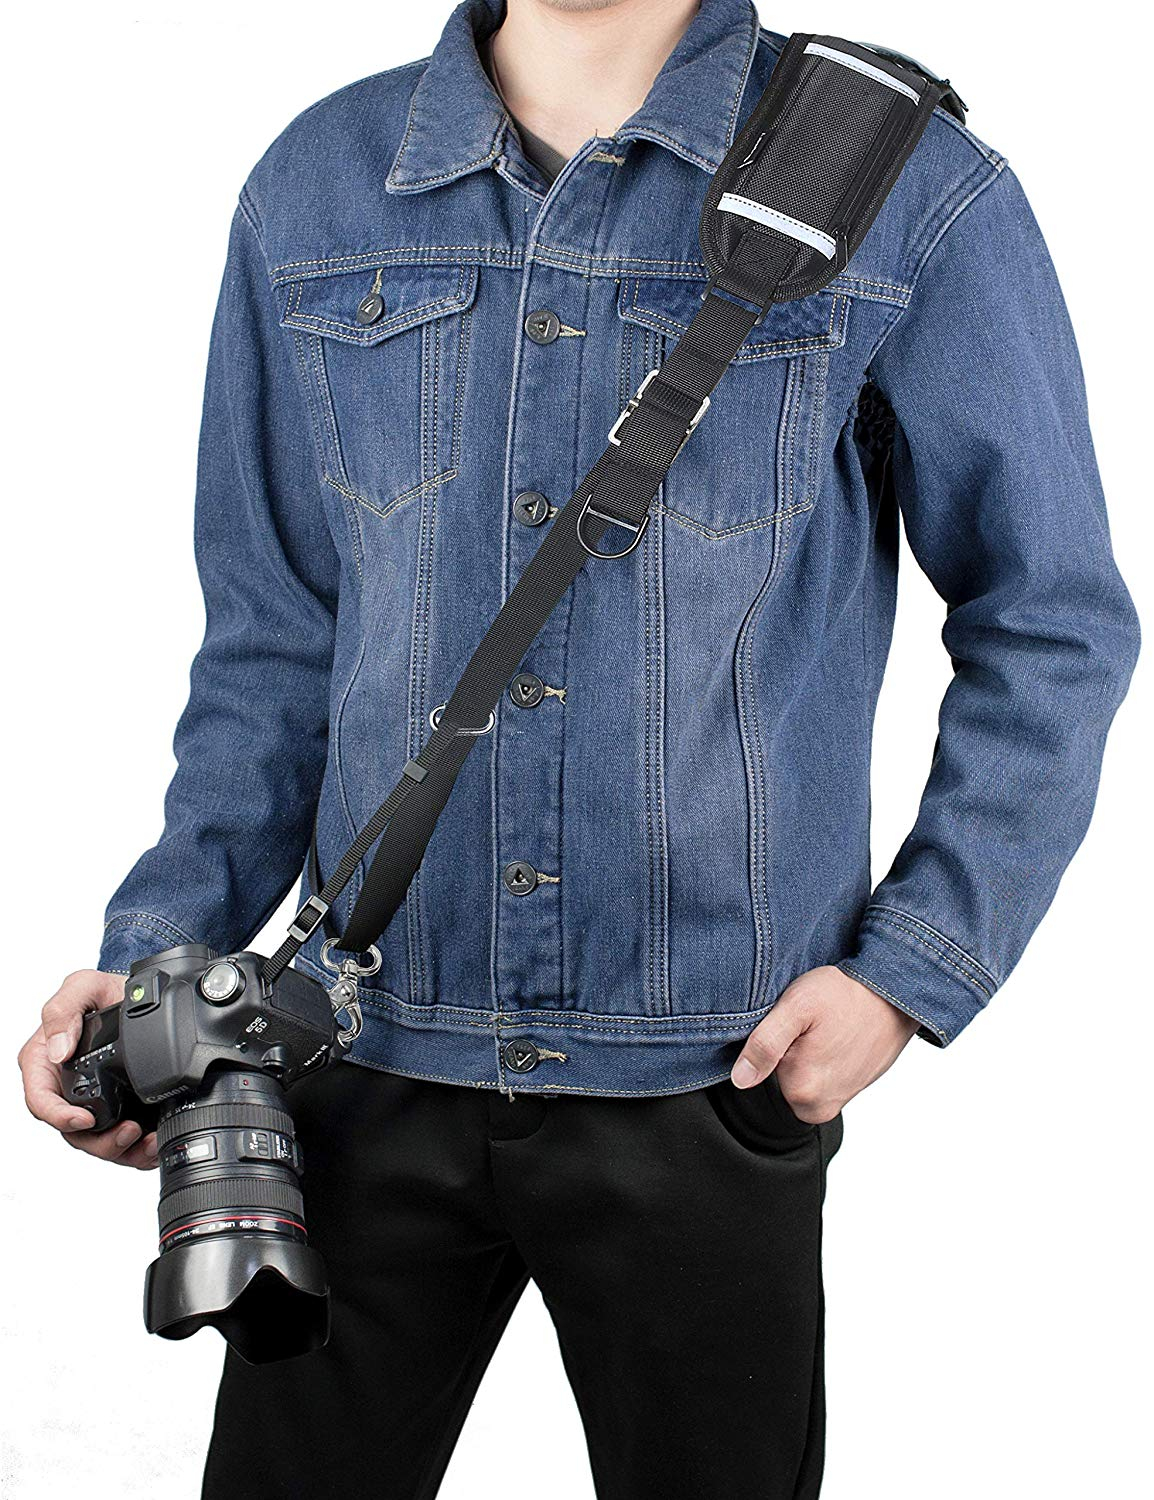 Camera Strap Long Shoulder Neck Sling  Quick Release DSLR  For Canon Nikon Sony Mirrorless